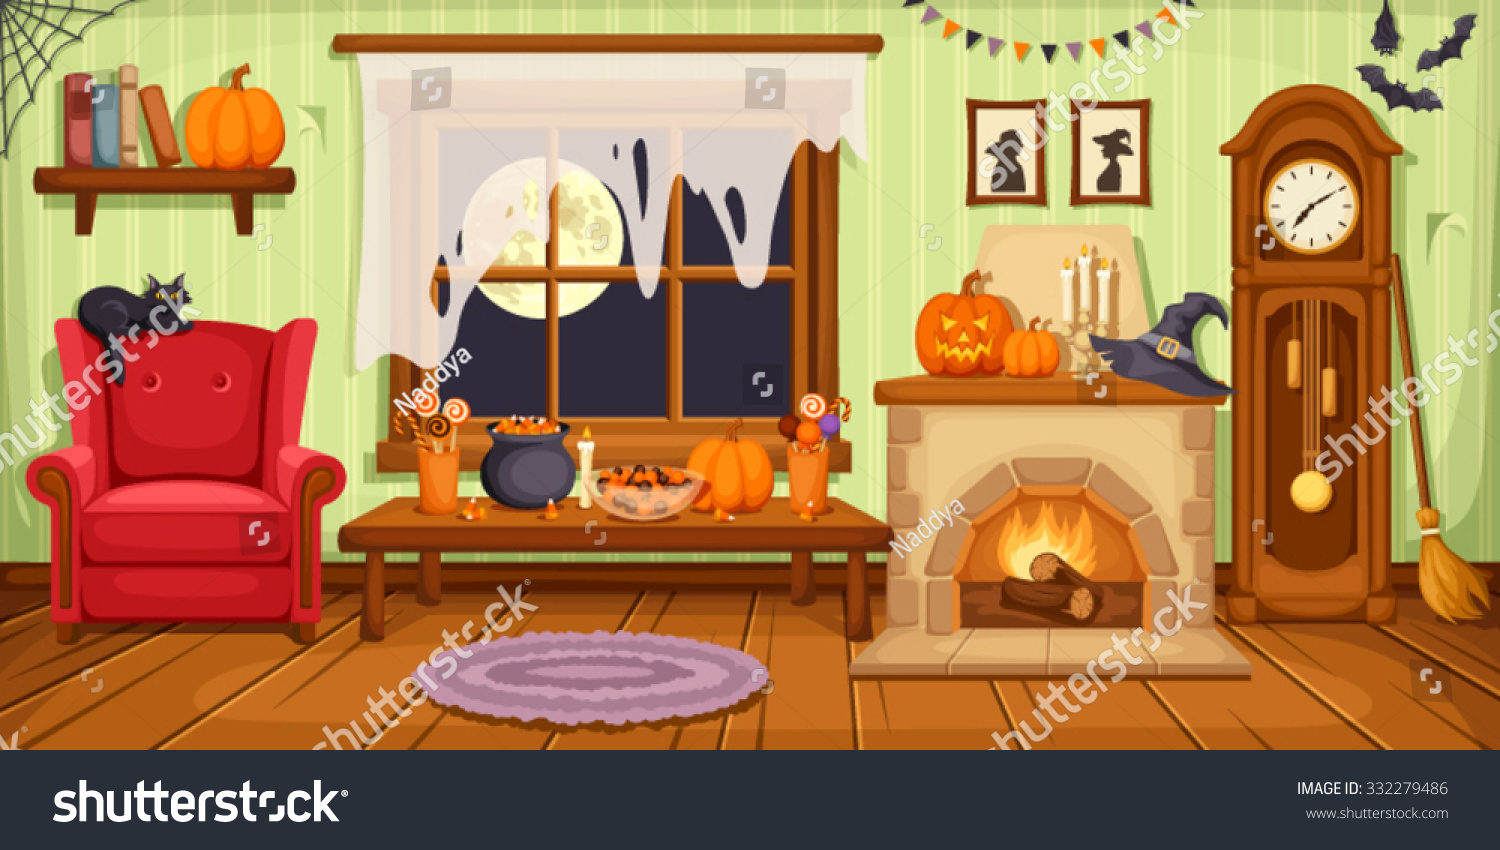 Vector Illustration Of Living Room With Armchair Table Clock And Fireplace Decorated For Halloween